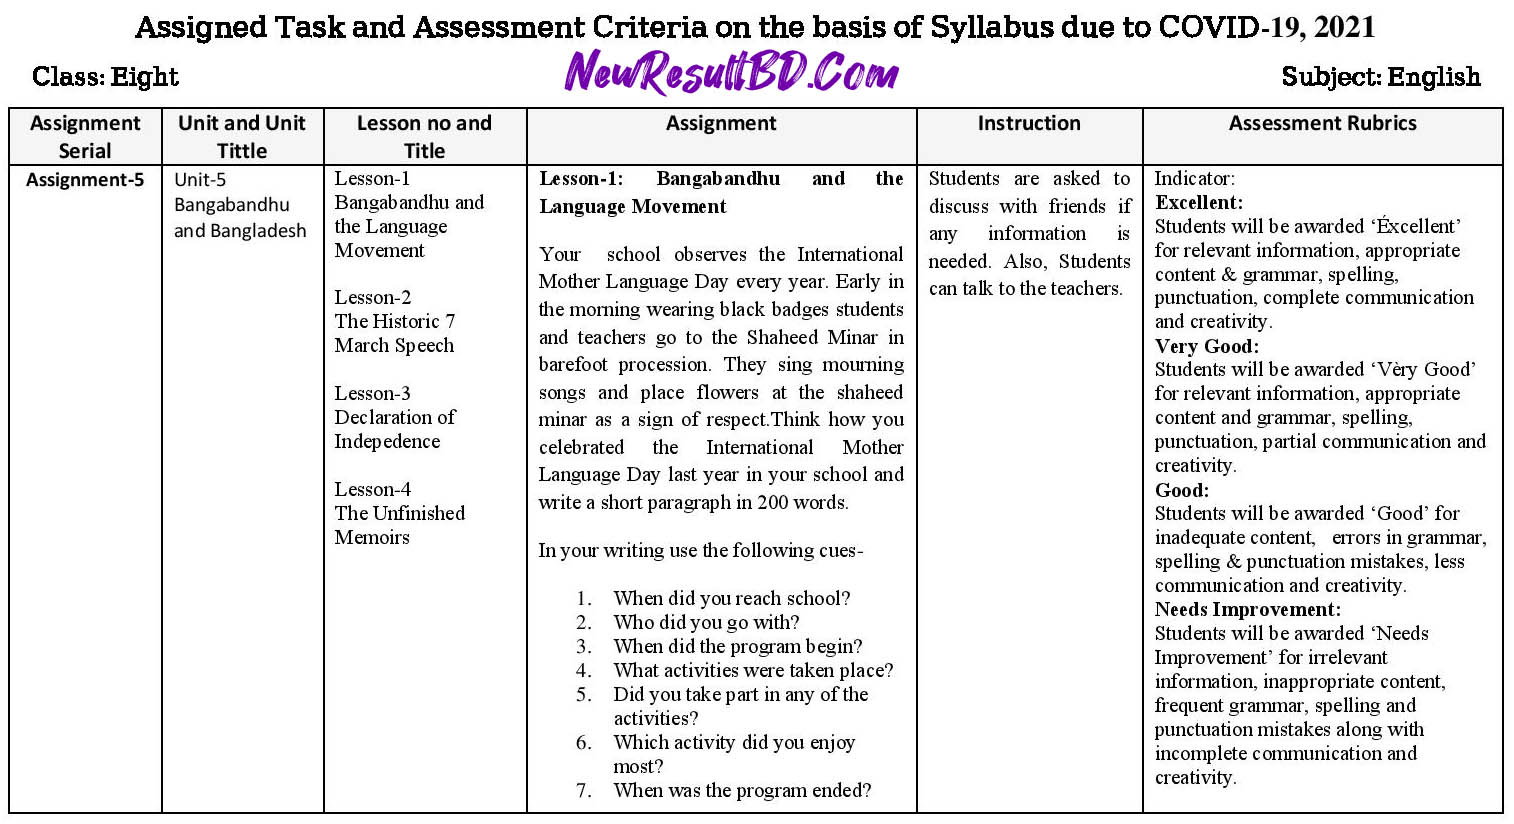 Class 8 English 16th Week Assignment 2021